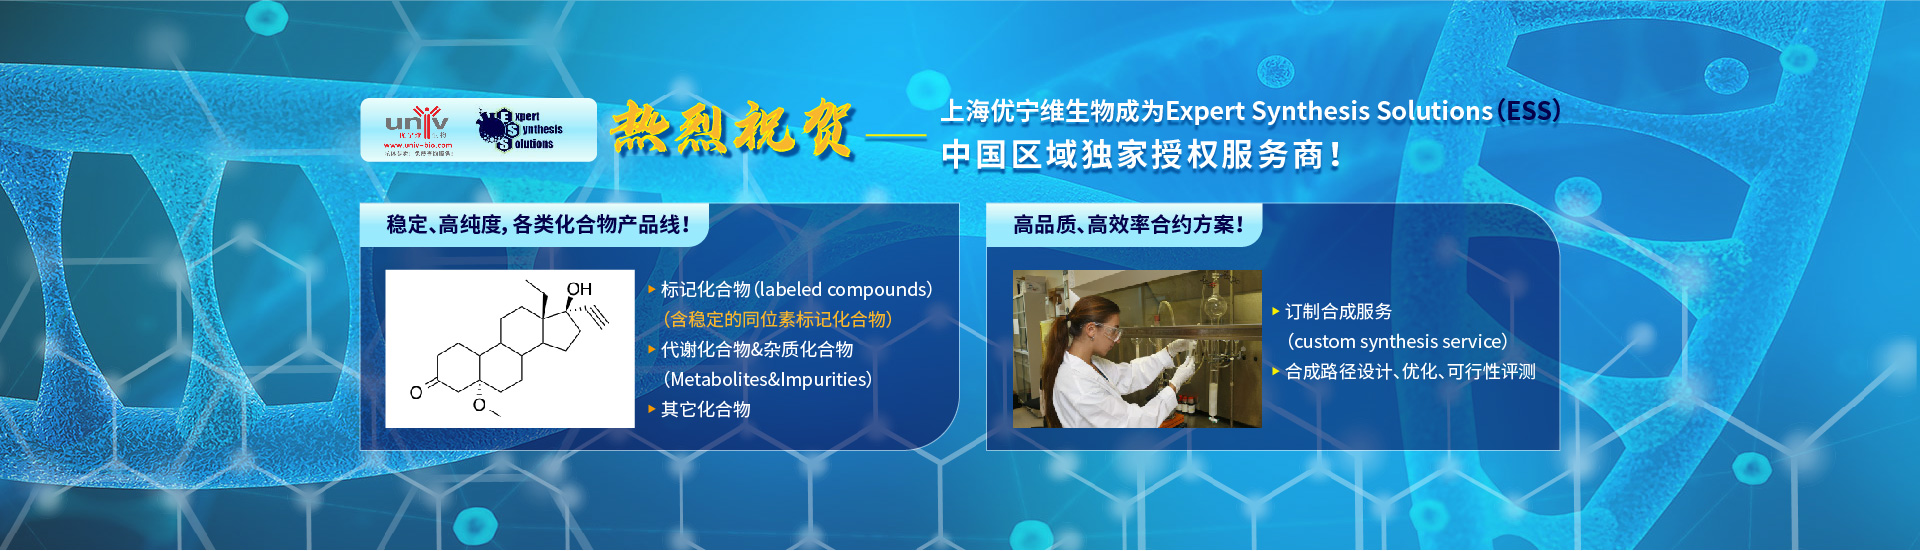 Expert Synthesis Solutions 授权服务商